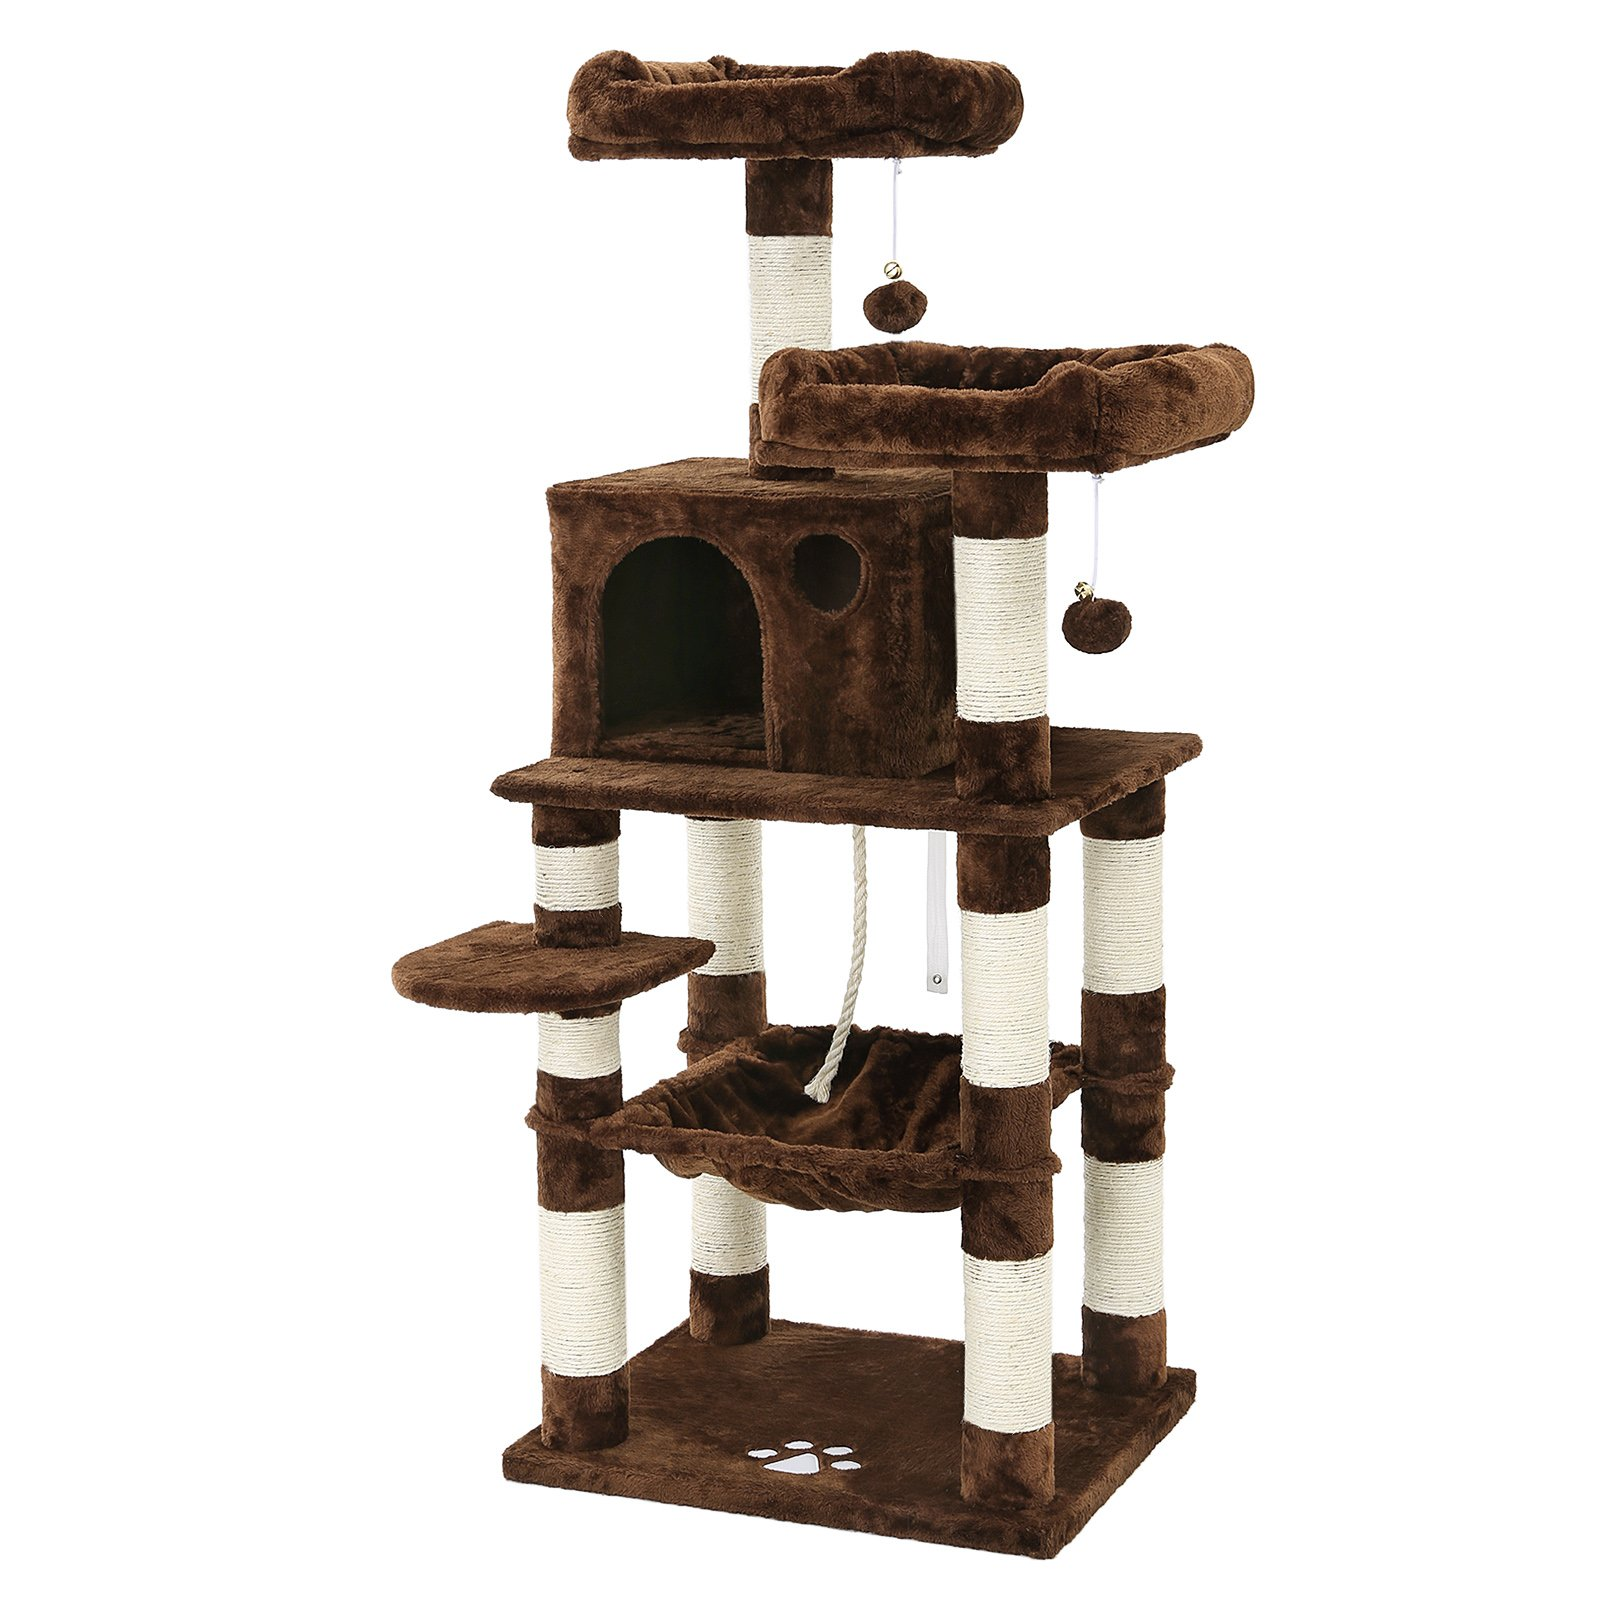 """SONGMICS 58"""" Multi-Level Cat Tree with Sisal-Covered Scratching Posts, Plush Perches, Hammock and Condo, Cat Tower Furniture - for Kittens, Cats and Pets UPCT15Z"""